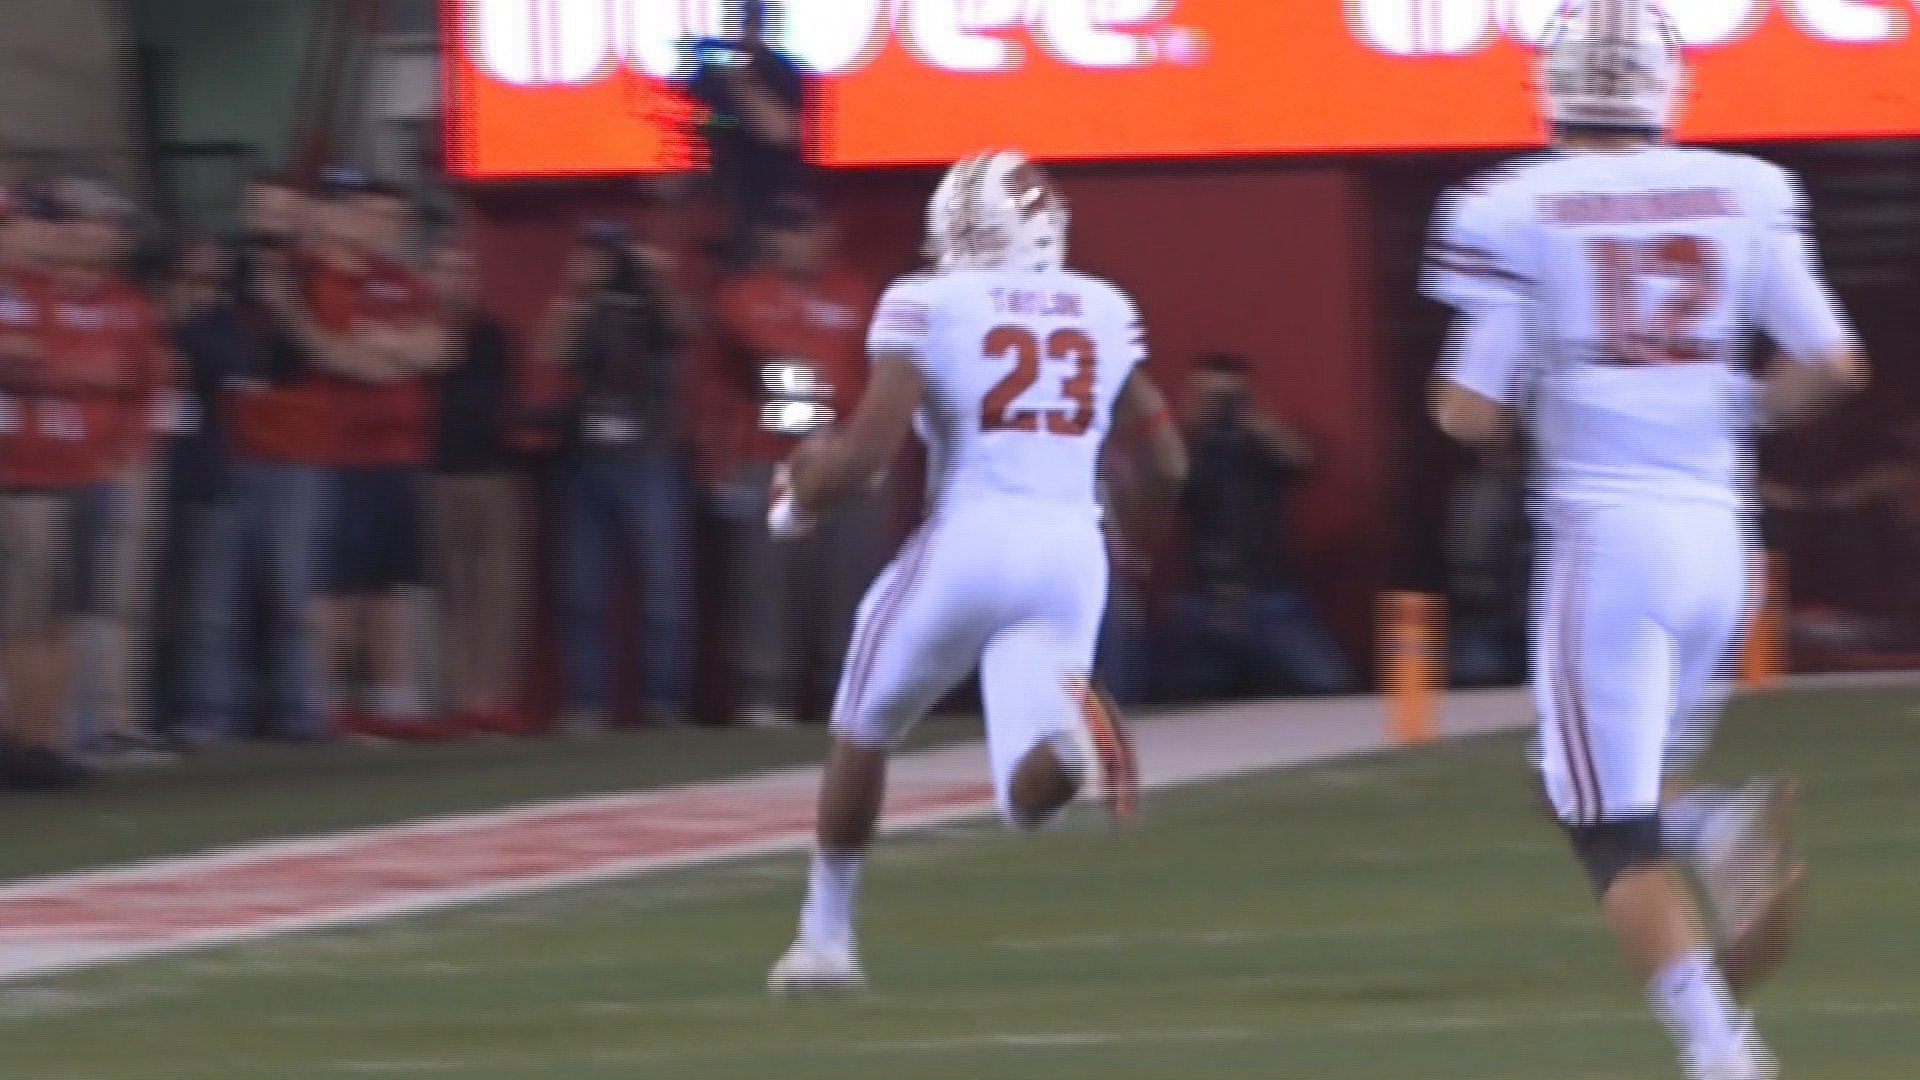 Wisconsin running back Jonathan Taylor ran for 249 yards in the Badgers' 38-17 win over Nebraska.